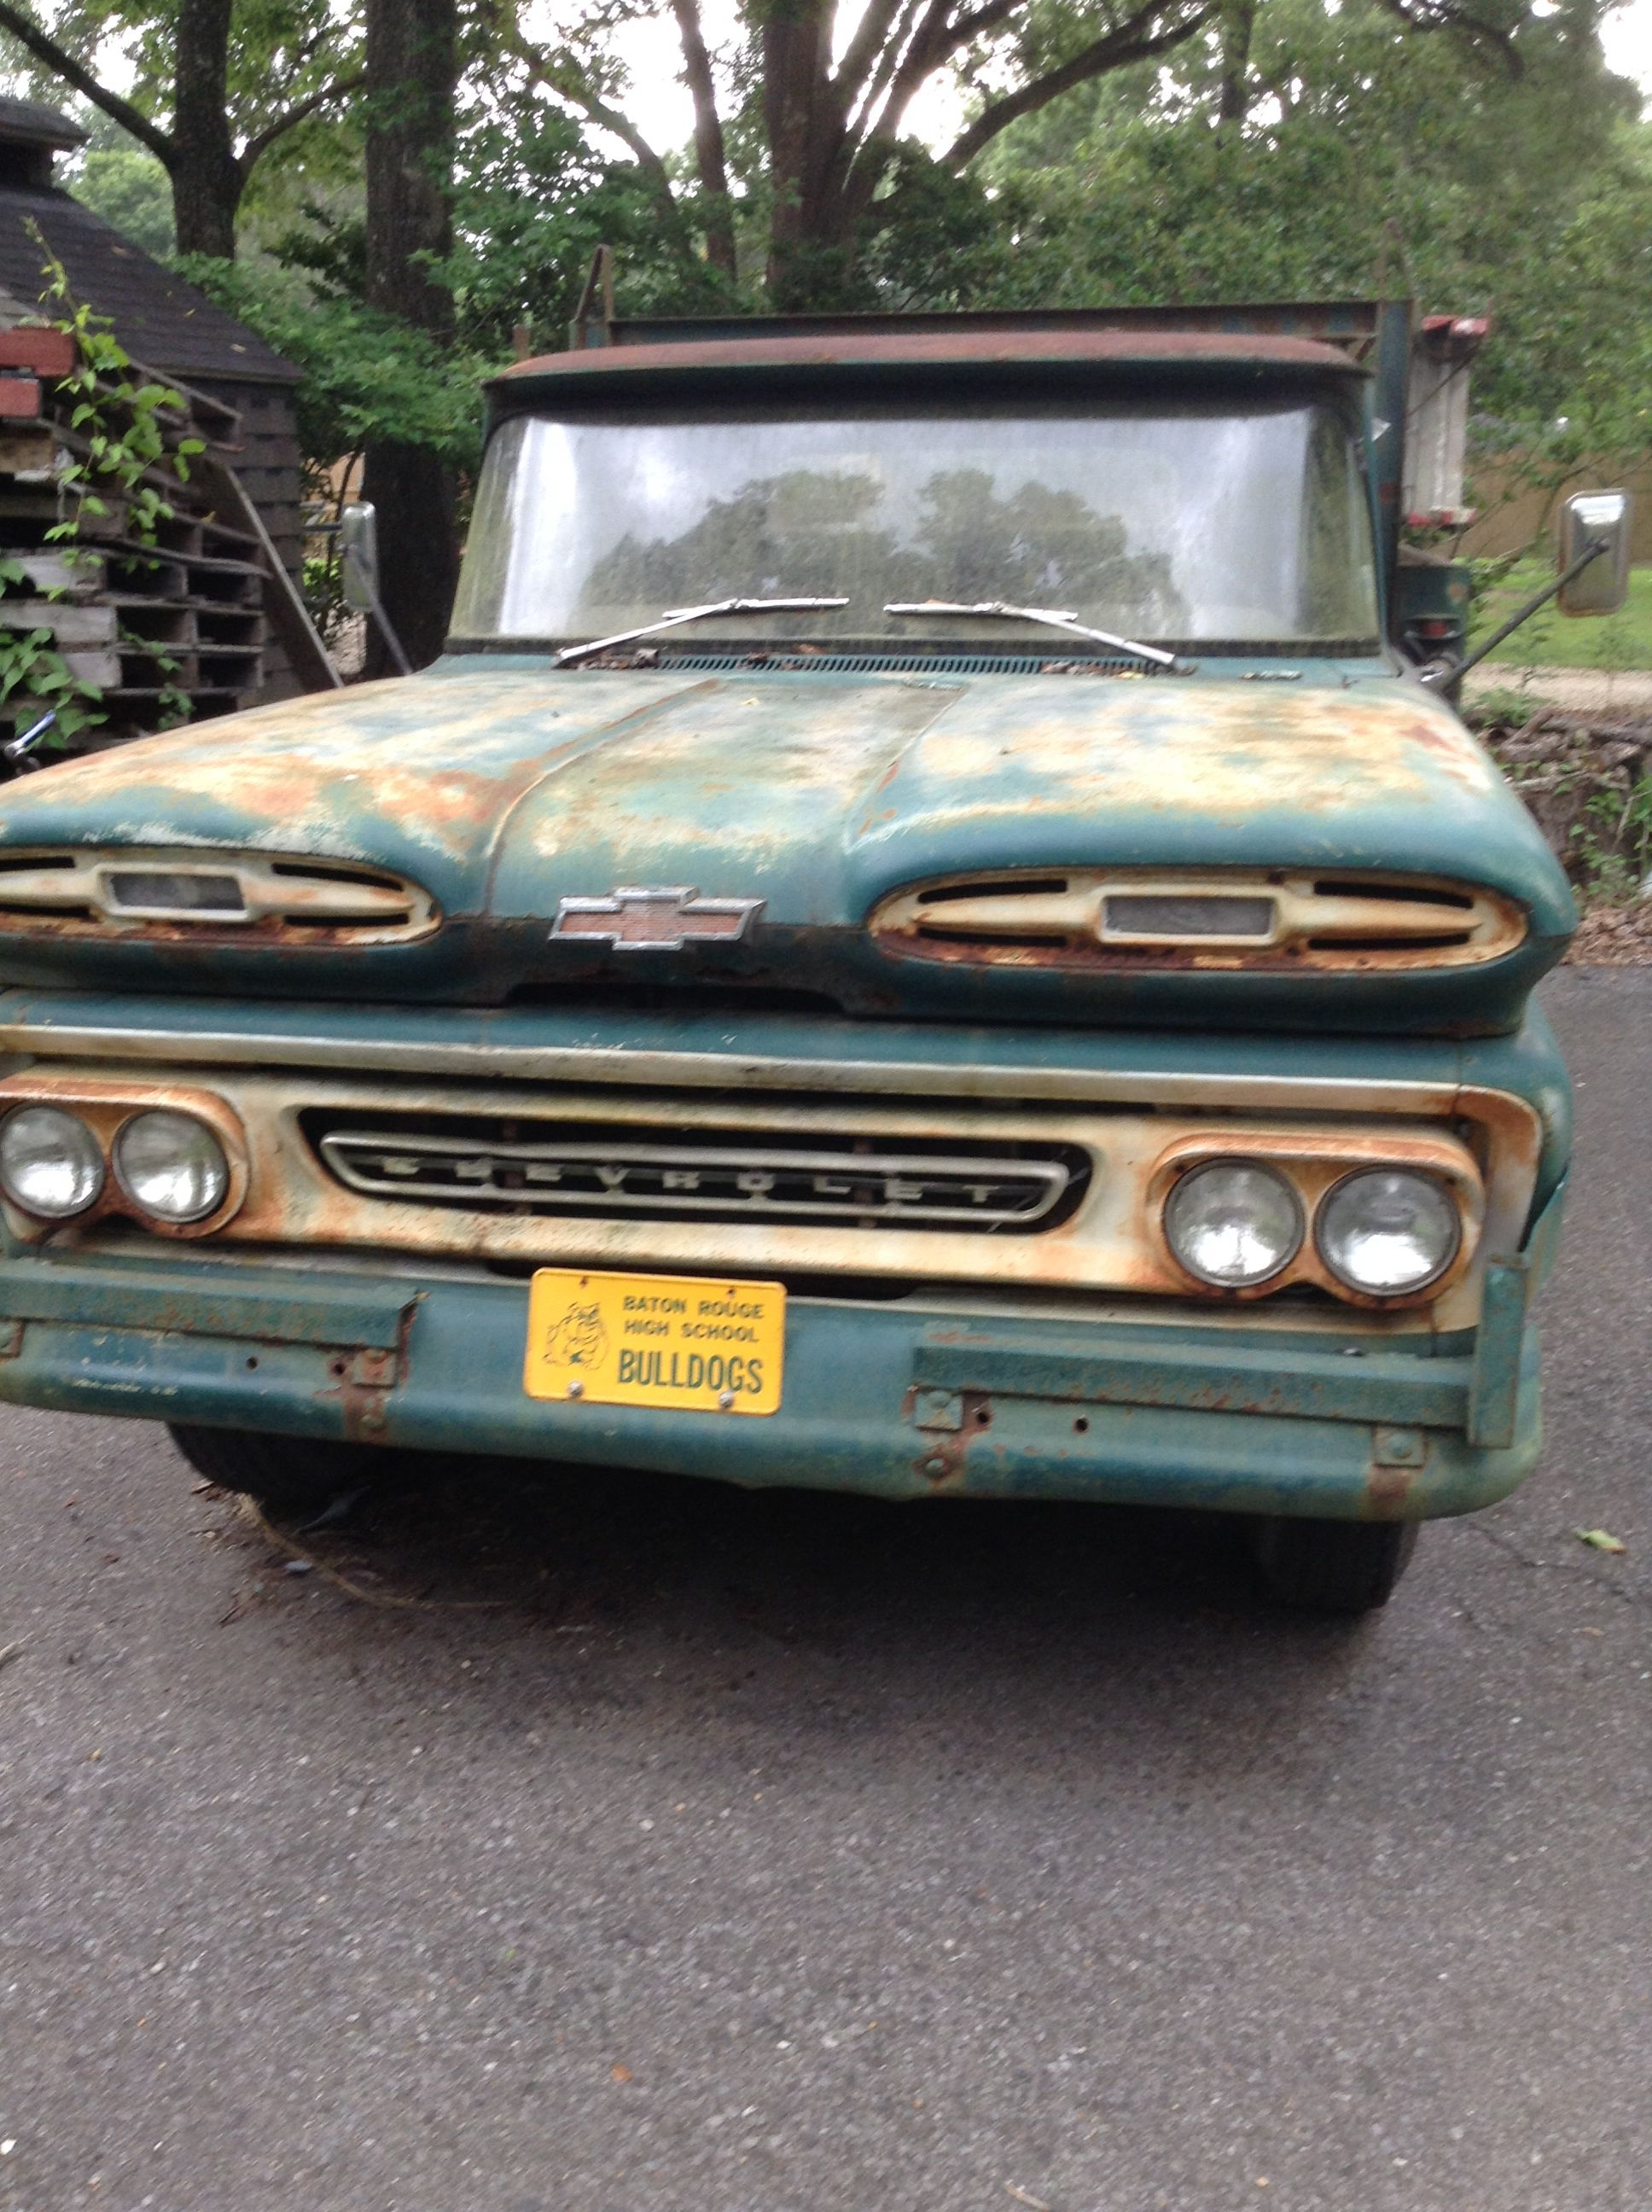 My Dads 1961 Chevy 1 Ton Pickup He Is The Second Owner And This Chevrolet Pick Up Truck Has Just Shy Of One Million Miles On Original Motor